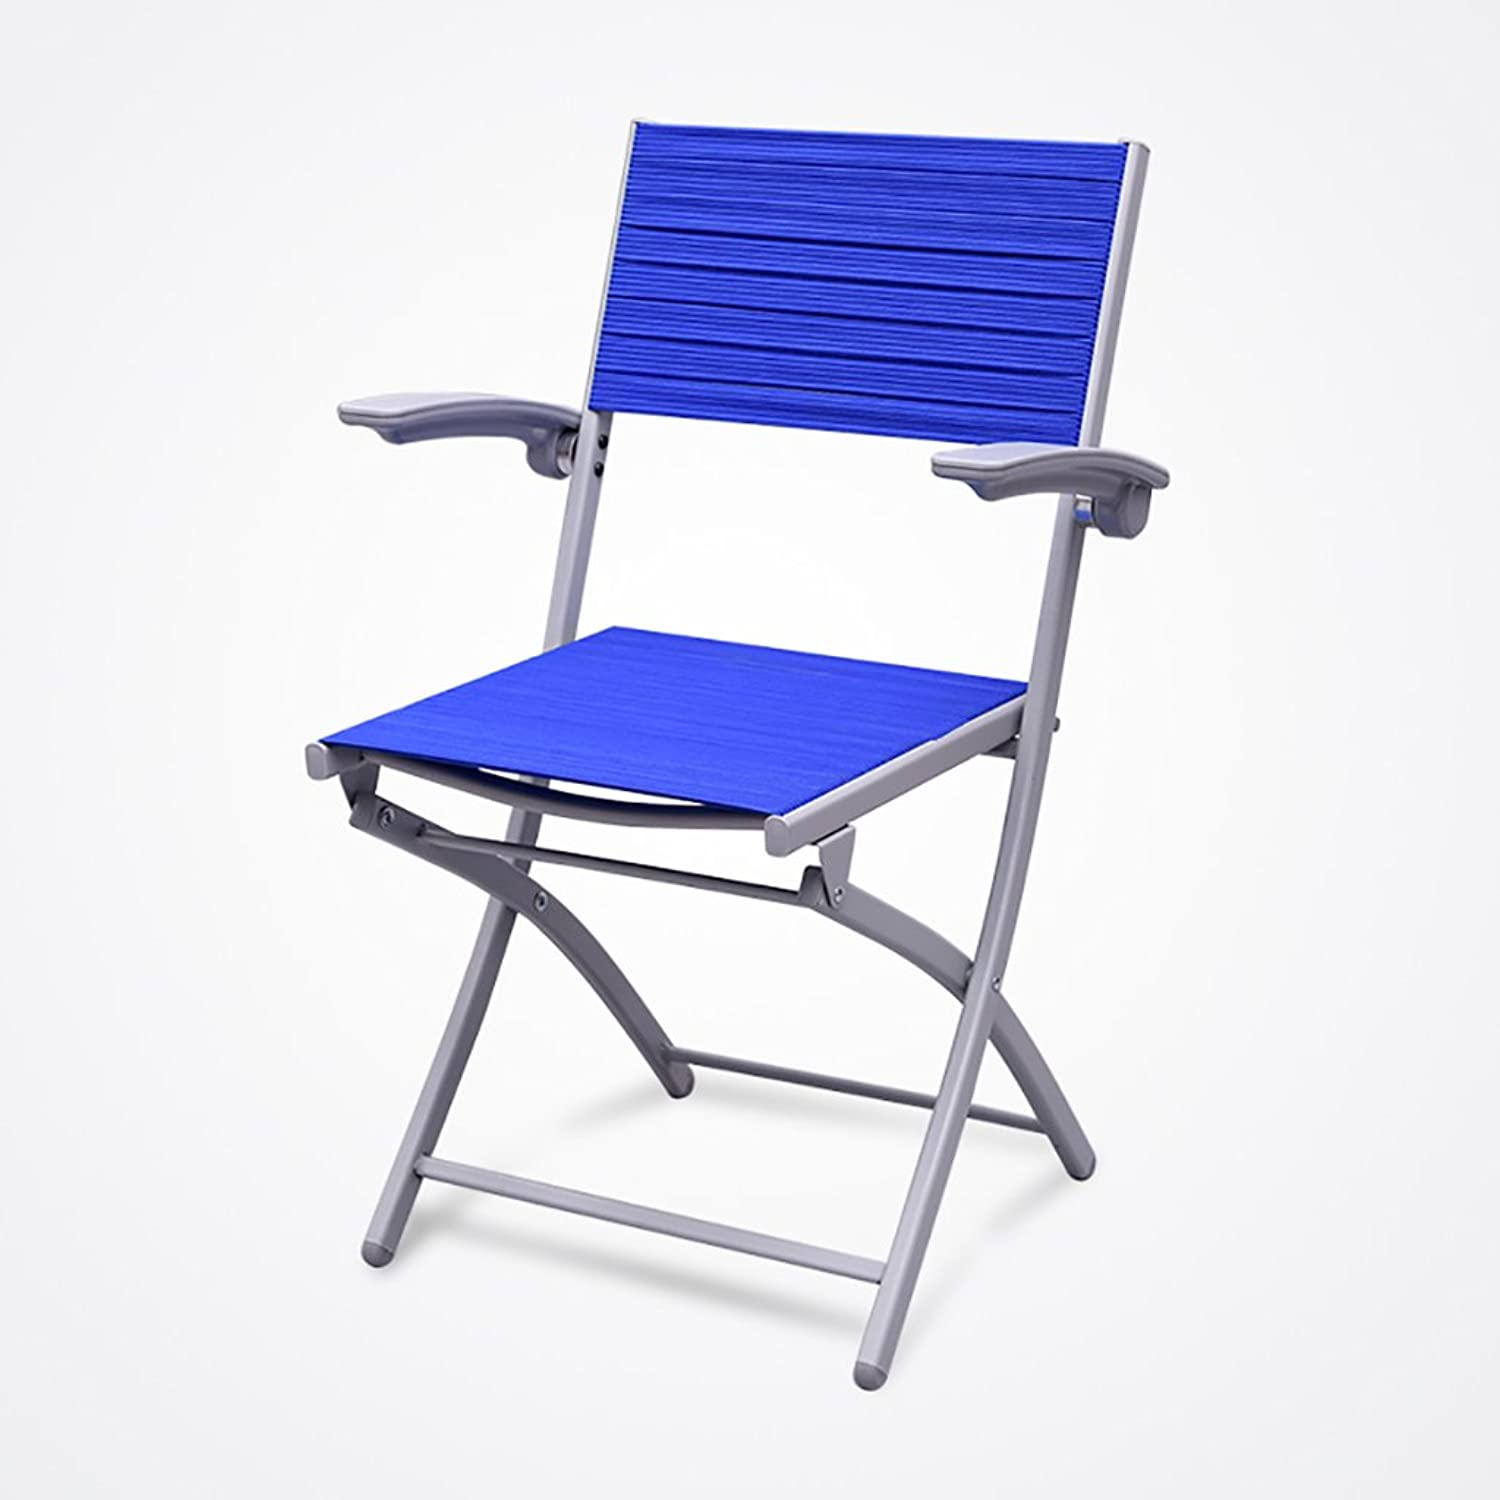 Chair Folding Chairs Chess Chairs Folding Backs Household Office Chairs Conference Chairs Training Chairs (color   bluee)